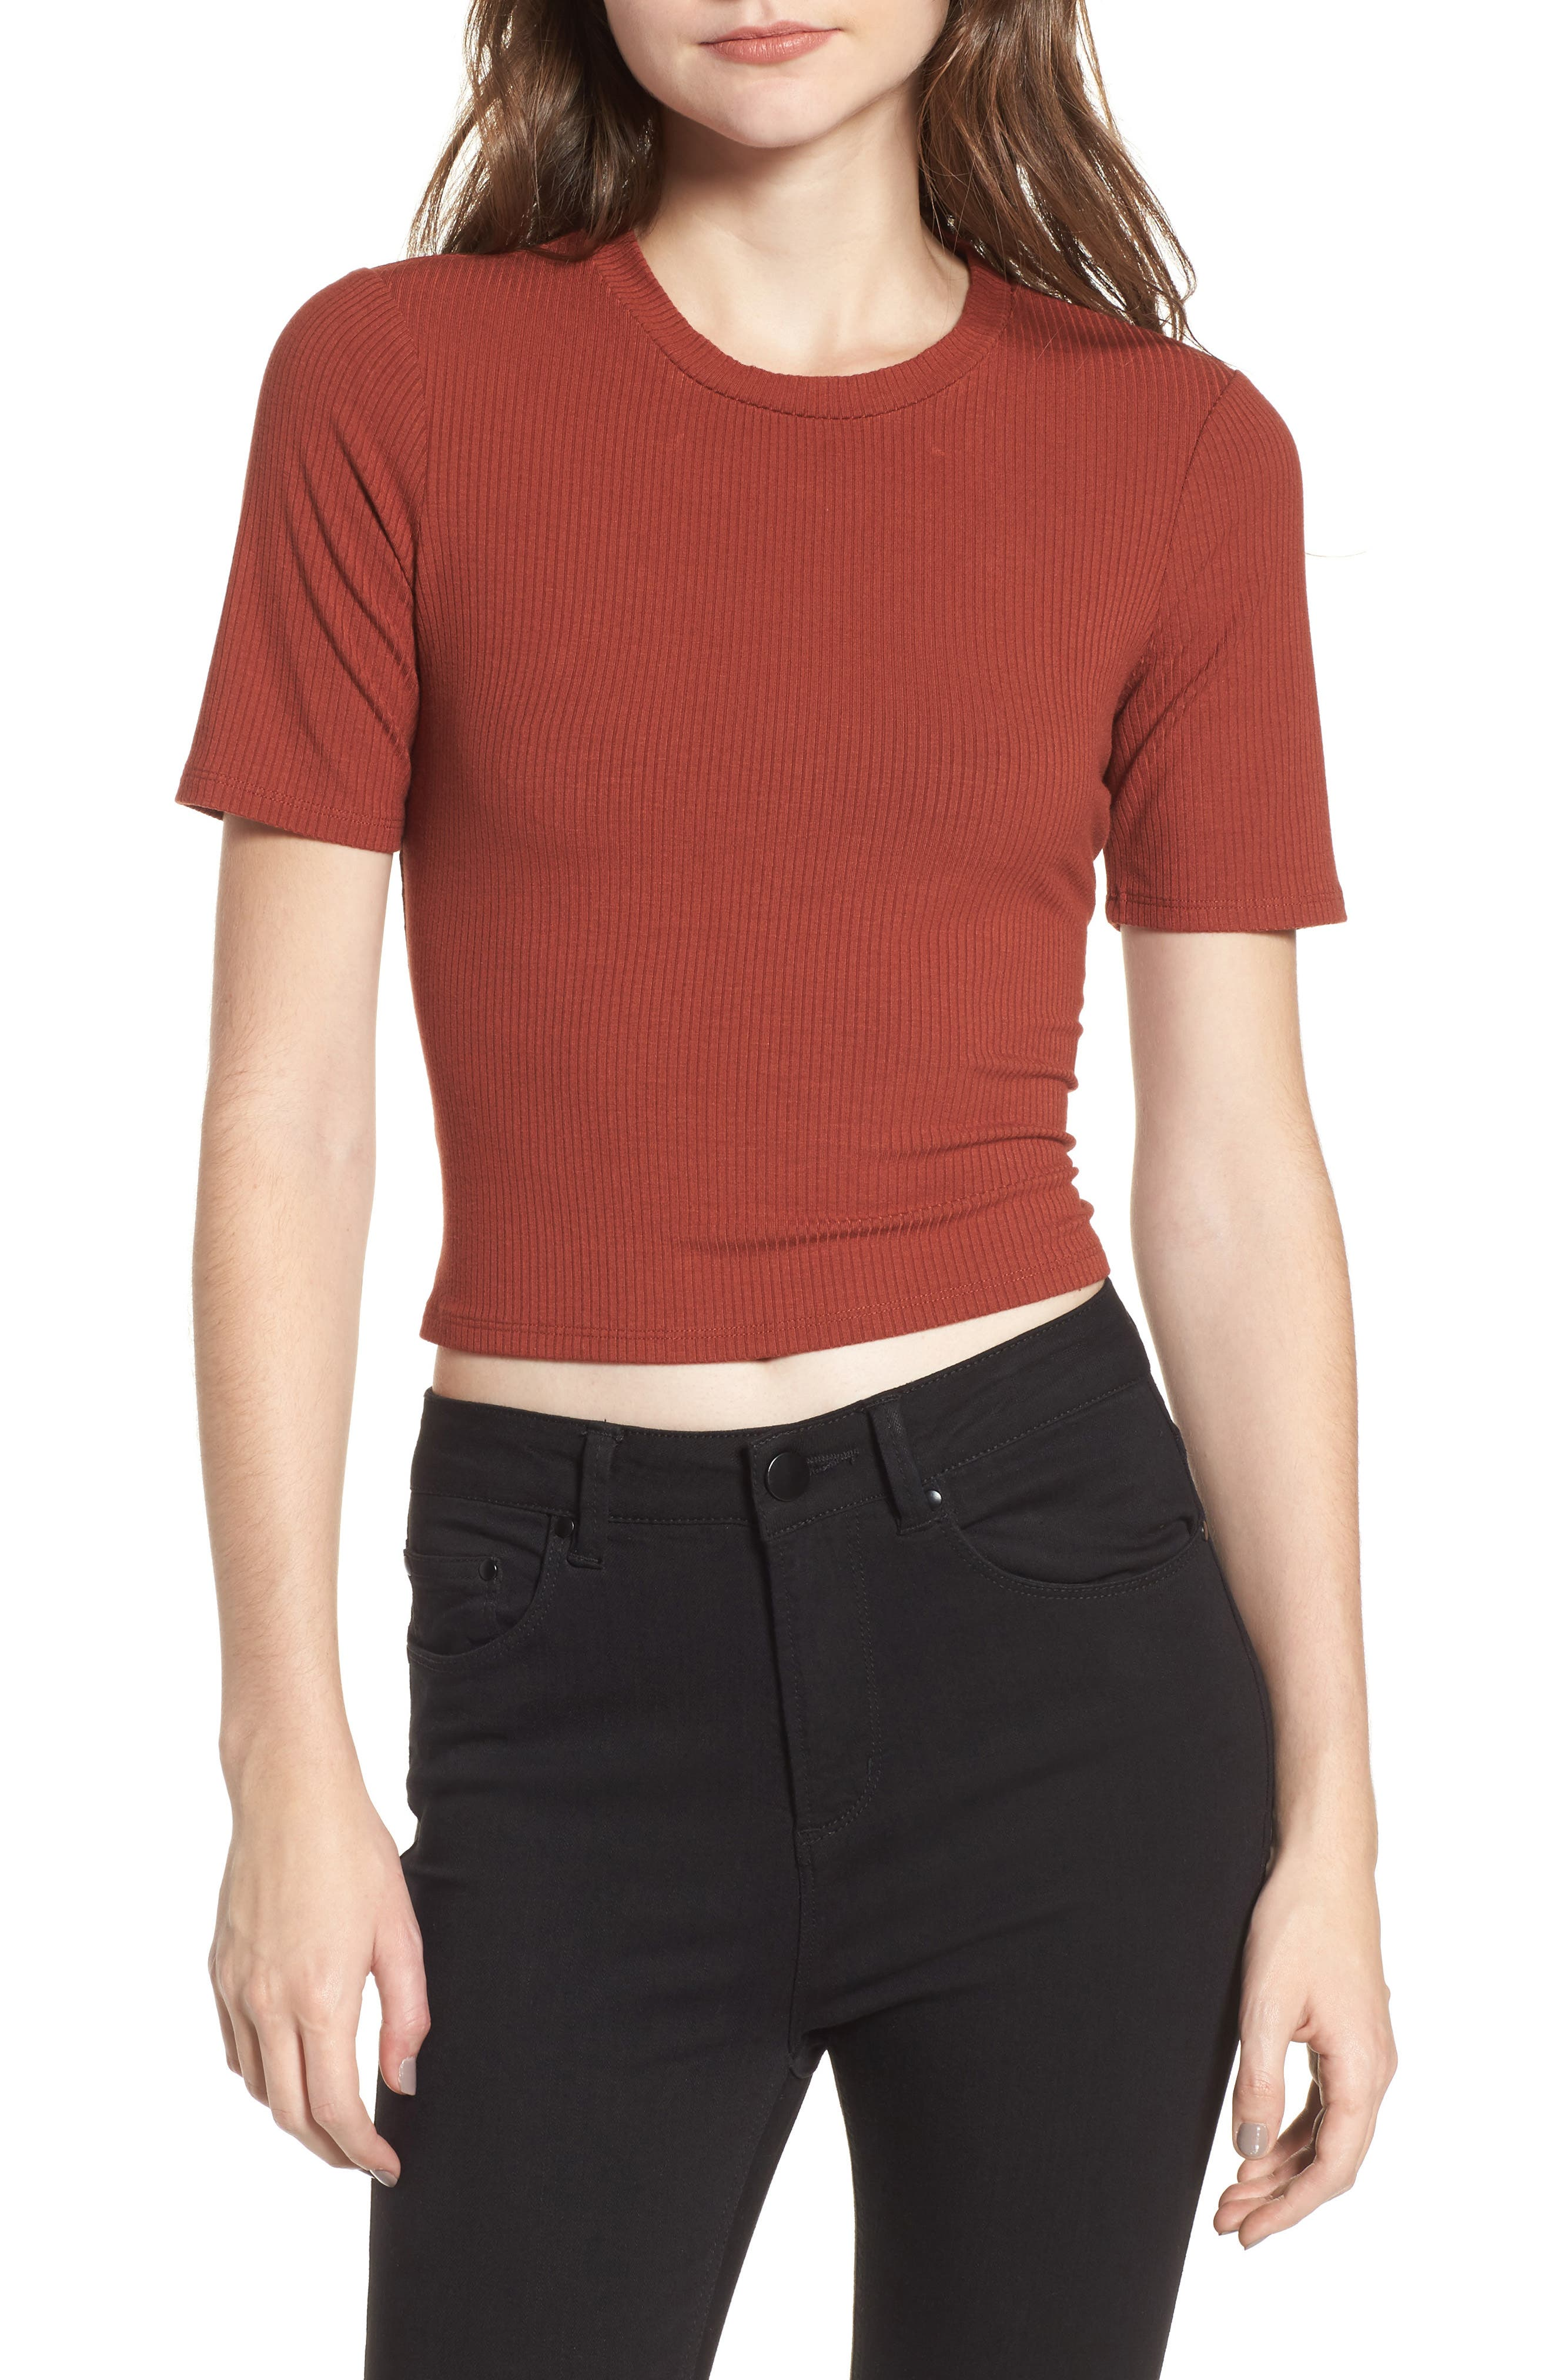 Alternate Image 1 Selected - AFRM Lace Back Ribbed Crop Top